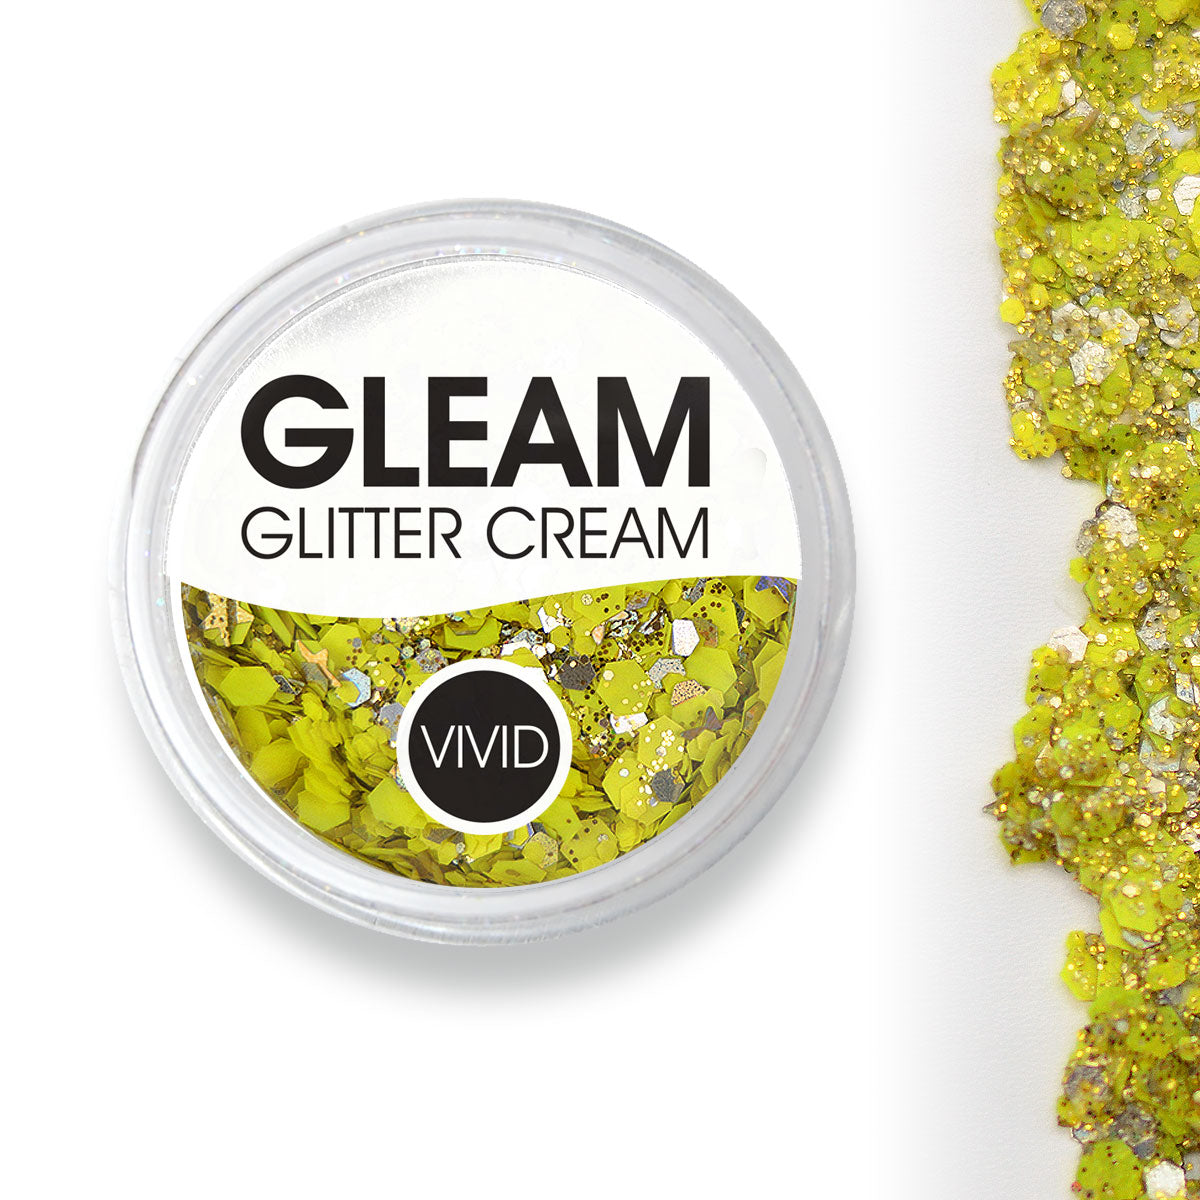 Pineapple - Gleam Chunky Glitter Cream (Supports Healing Smiles Foundation)